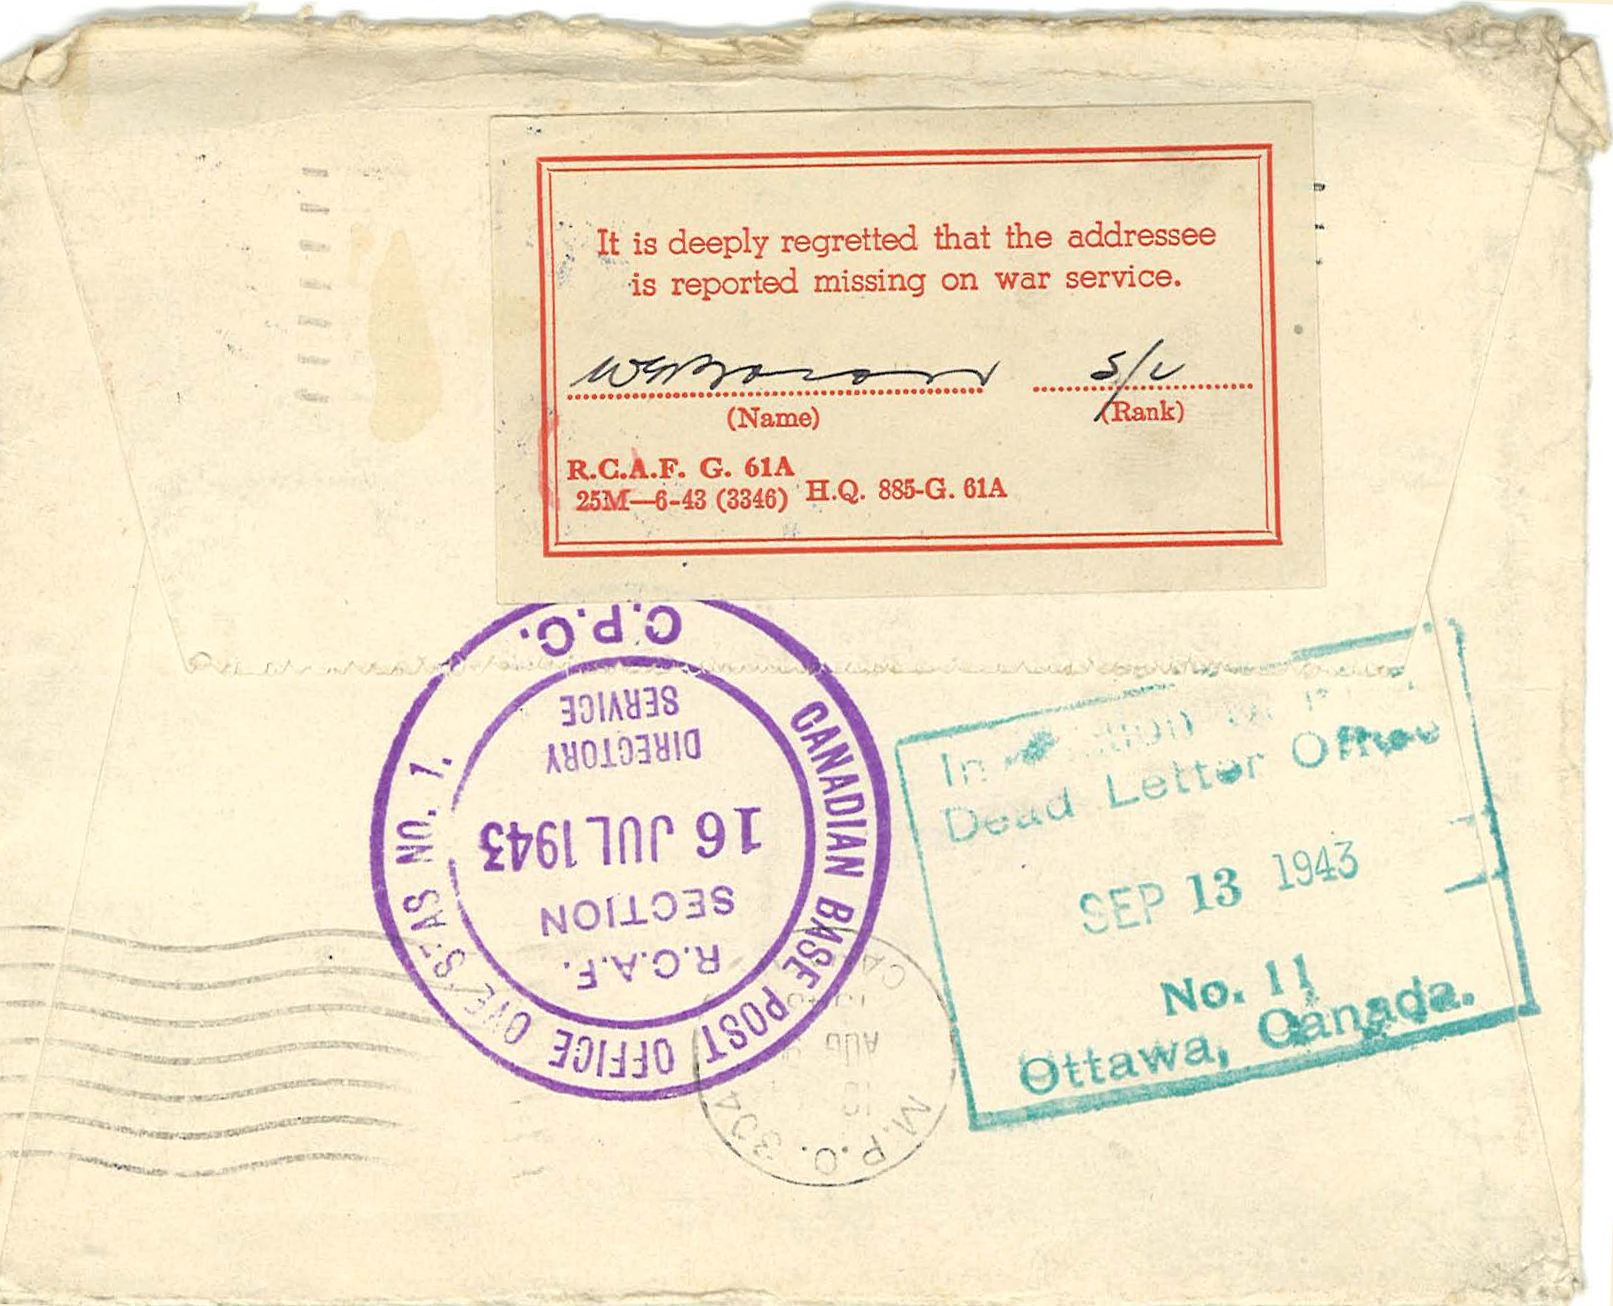 Envelope of a letter sent by Mrs. Fannie Lennox to her son John Watt Lennox, stationed overseas as a fighter pilot. The letter was dated May 3, 1943. On the night of May 4/5, 1943 during his seventh sortie in a Halifax bomber with other allied bombers targeting Dortmund in the Ruhr valley, Lennox and his crew were shot down along the German-Dutch border. John Lennox and his air gunner, Bernard Moody were killed, but the remaining crew survived. Lennox was one month short of his twenty-third birthday.